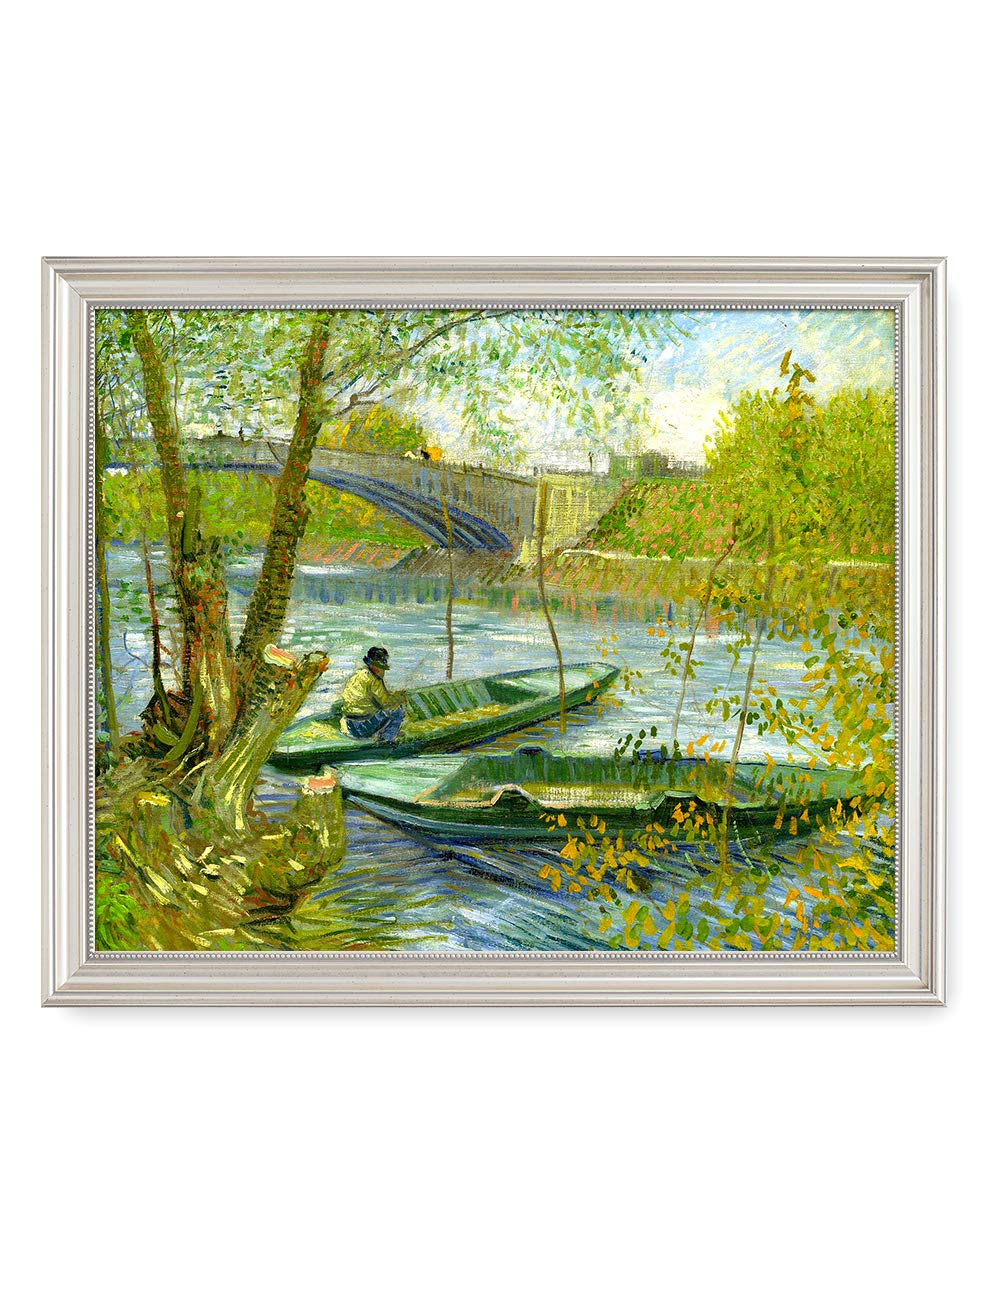 DECORARTS - Fishermen and Boats from The Pont De Clichy, Vincent Van Gogh Art Reproduction. Giclee Print& Framed Art for Wall Decor. 20x16, Framed Size: 23x19